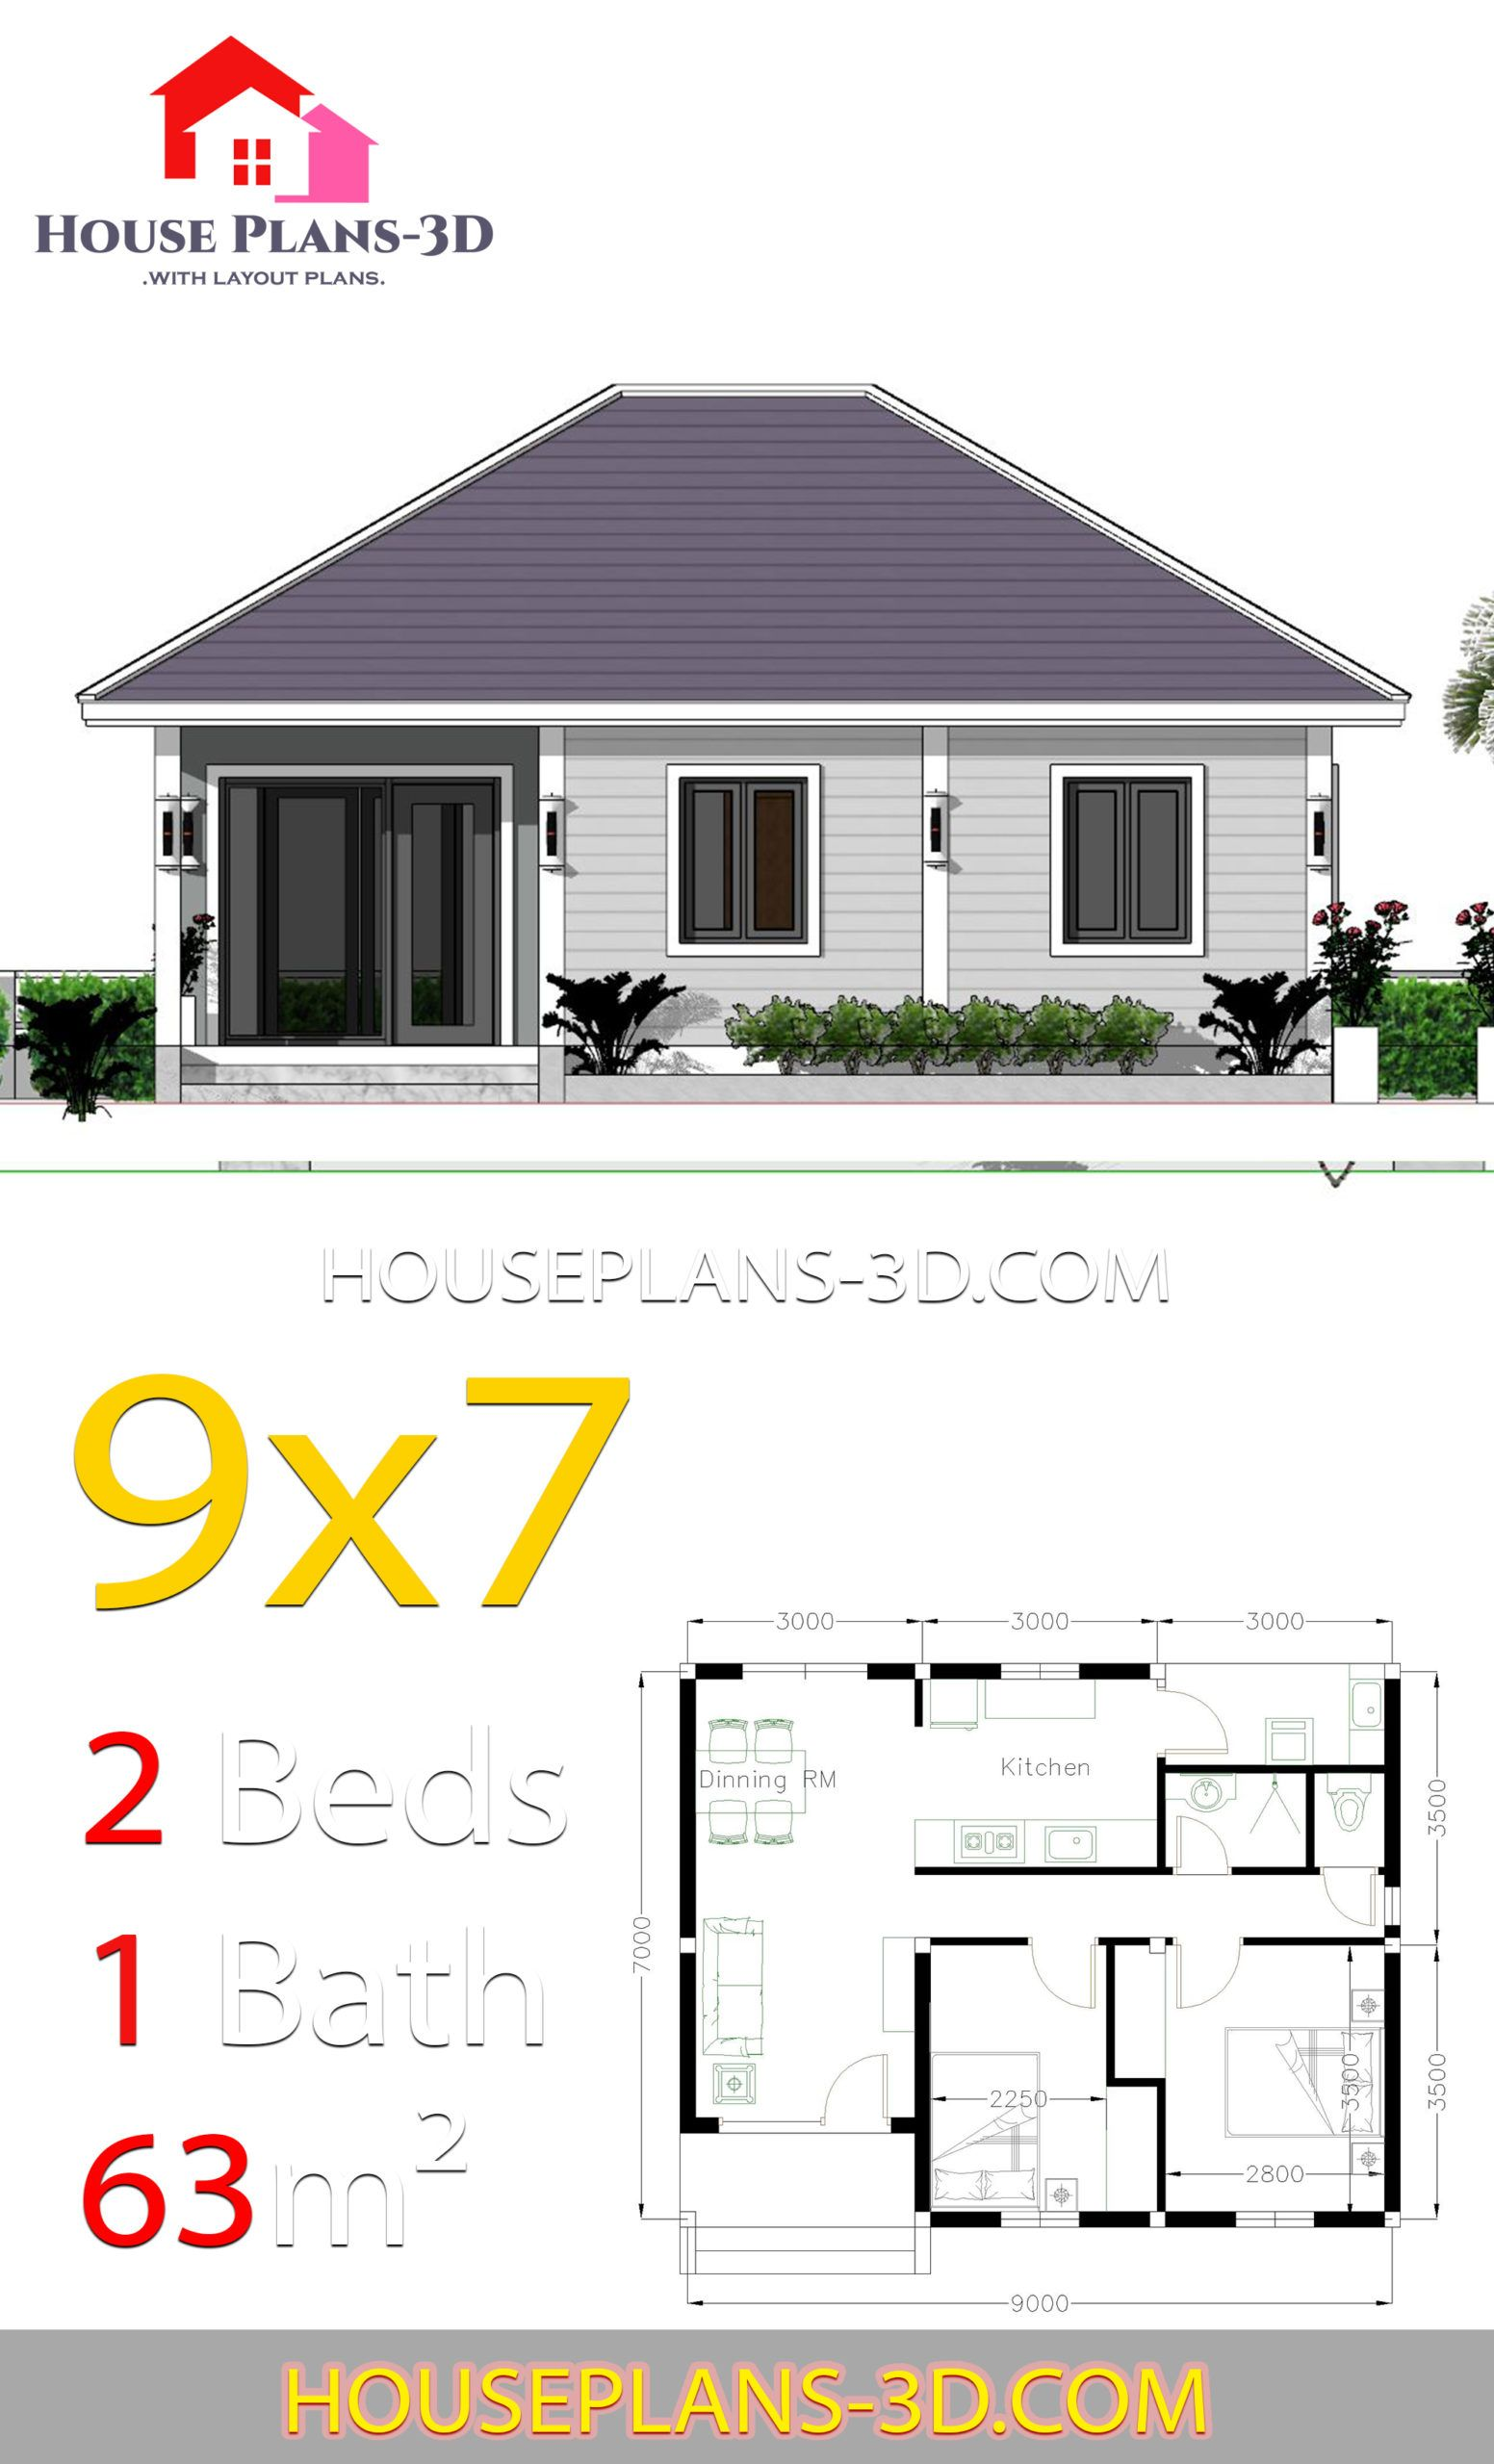 House Plans 9x7 With 2 Bedrooms Hip Roof House Plans 3d House Plans House Roof Hip Roof